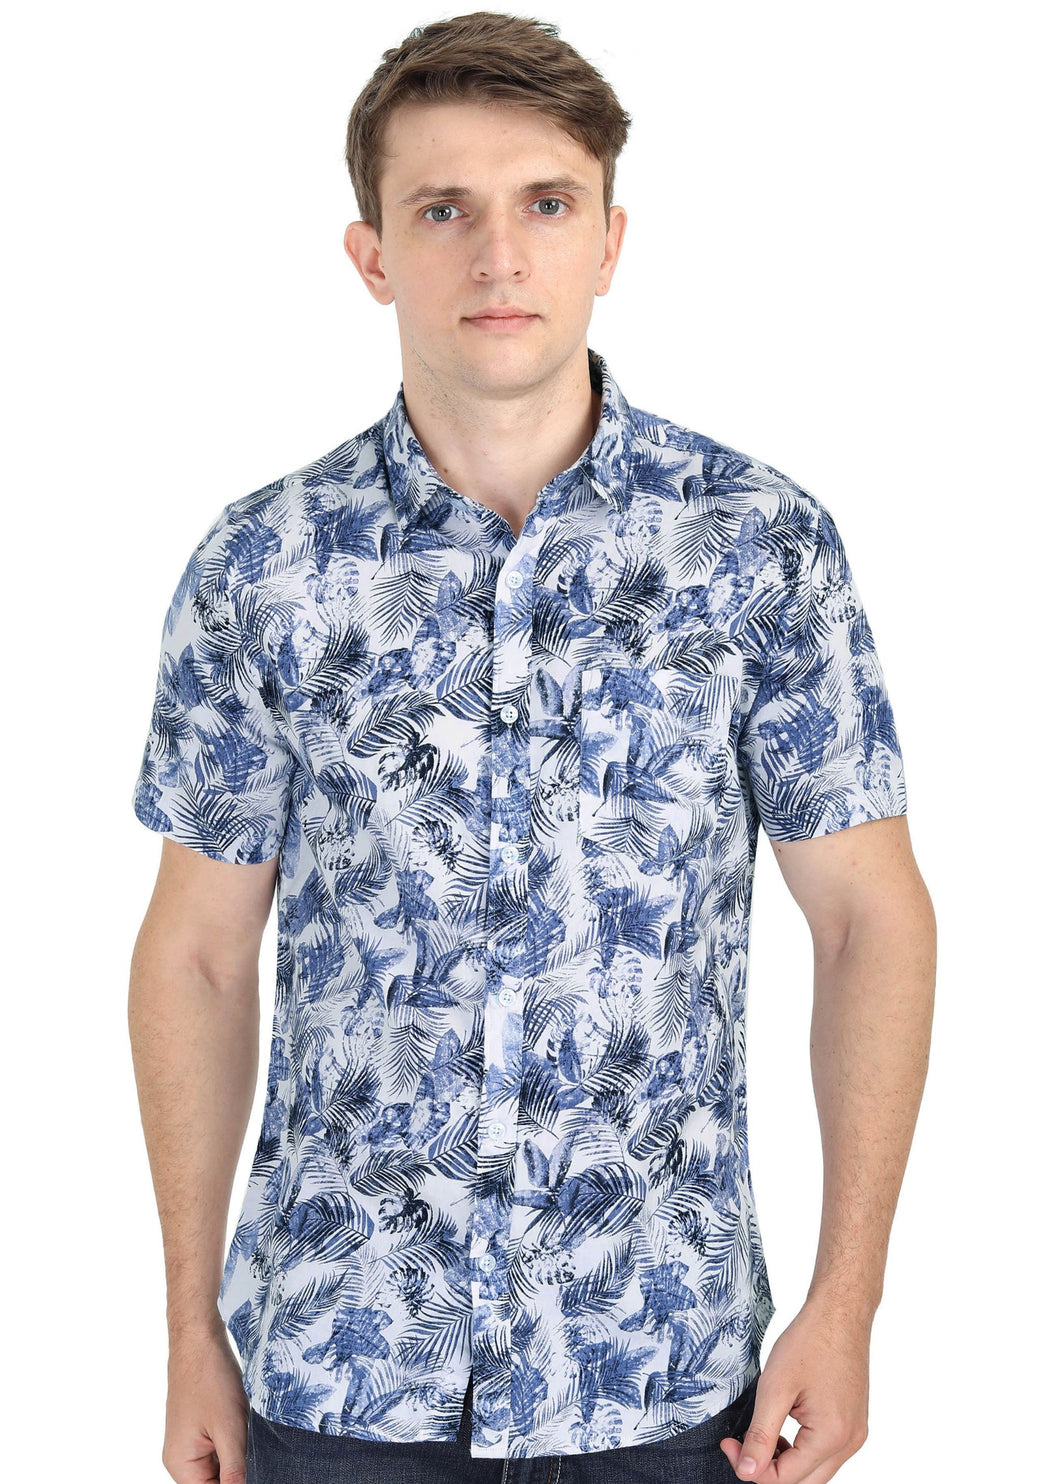 Tusok-lagoonVacation-Printed Shirtimage-Lagoon (1)